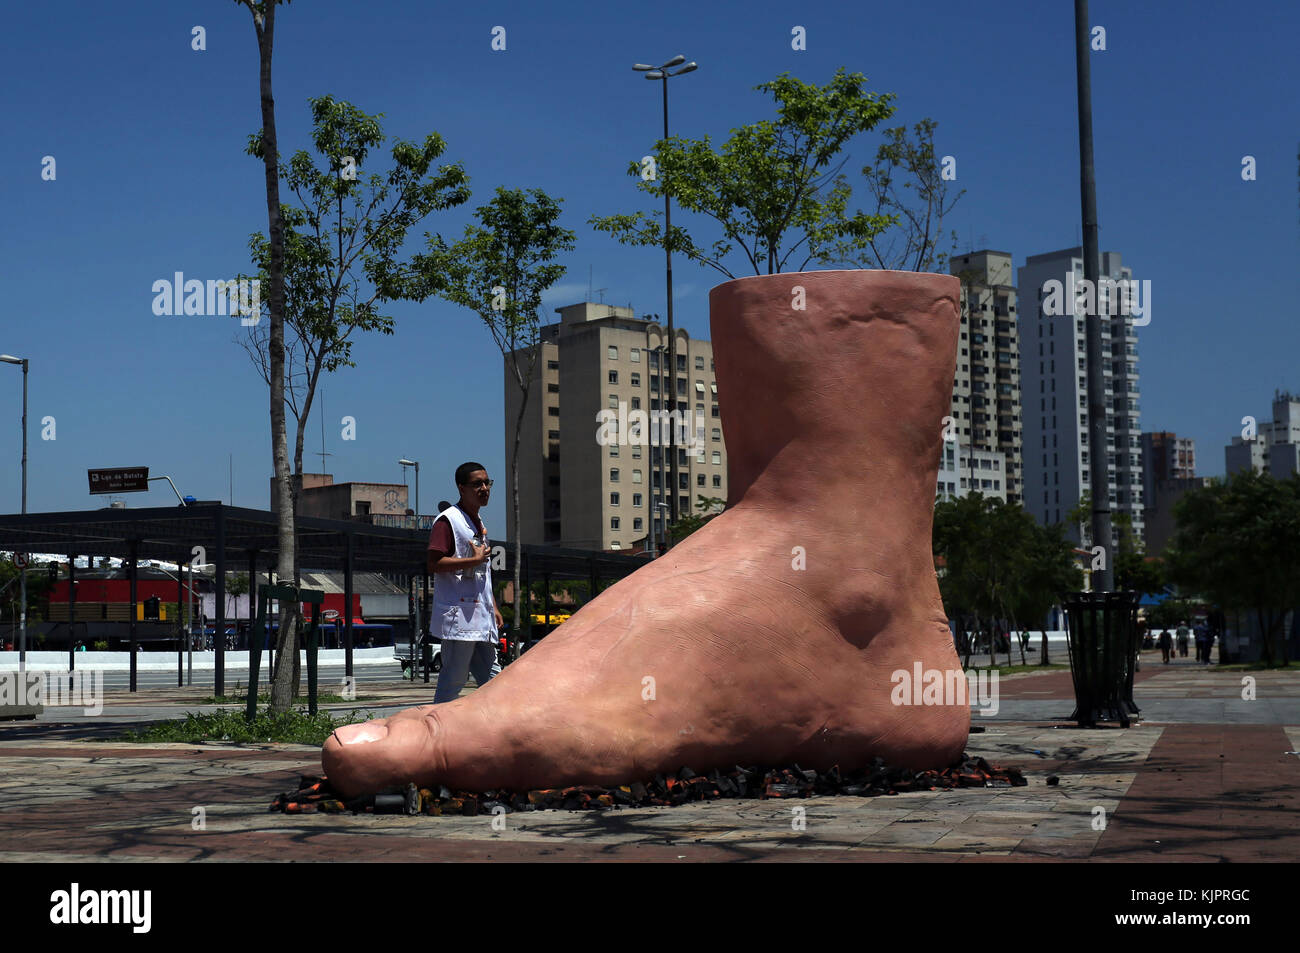 Sao Paulo, Brazil. 29th Nov, 2017. A man watches a sculpture of a giant foot stepping on hot coals, of Brazilian - Stock Image